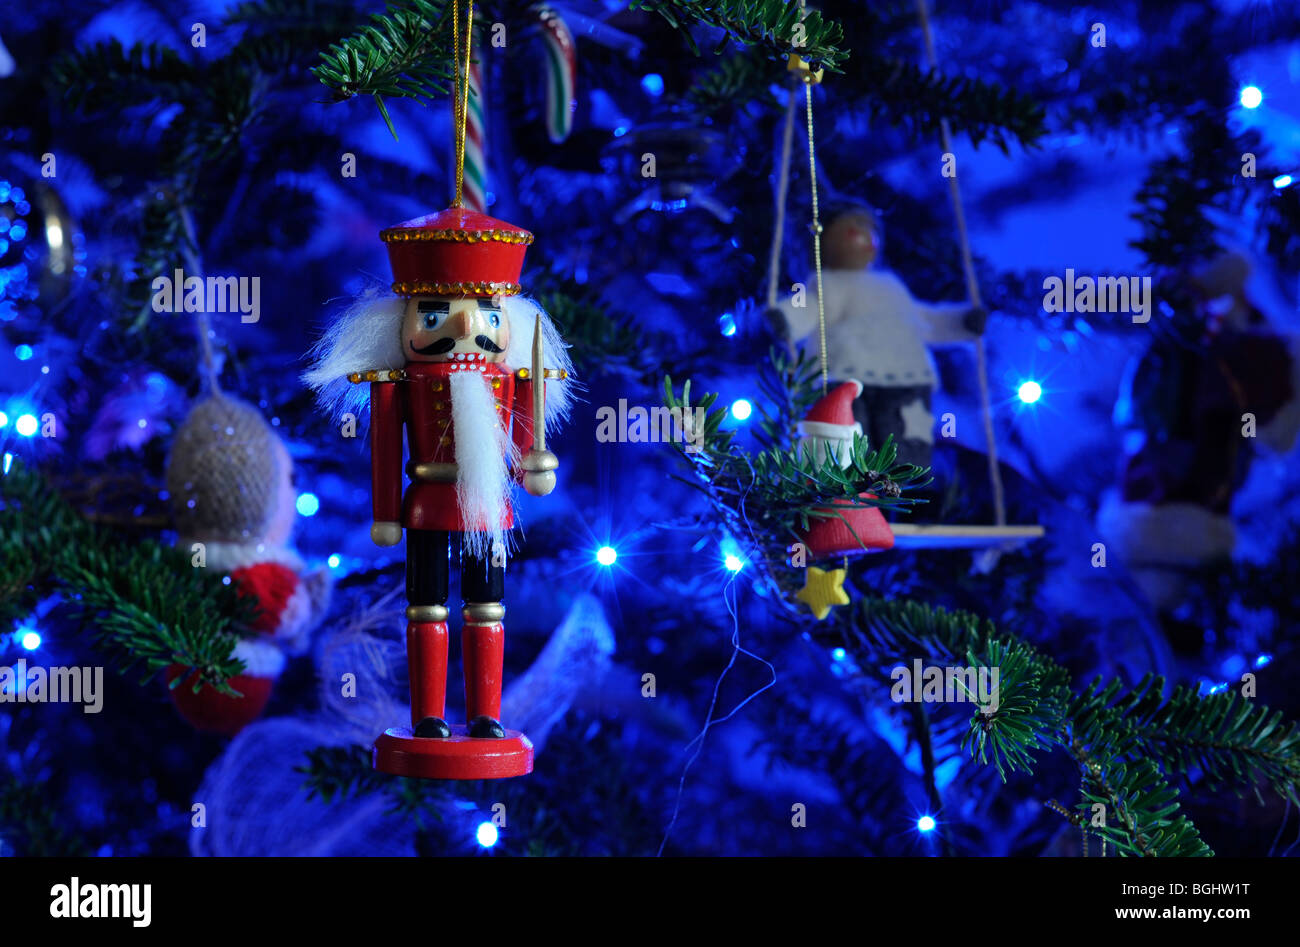 a traditional wooden nutcracker soldier christmas tree decoration with sword hangs from a festive tree with - Christmas Decorations Wooden Soldiers